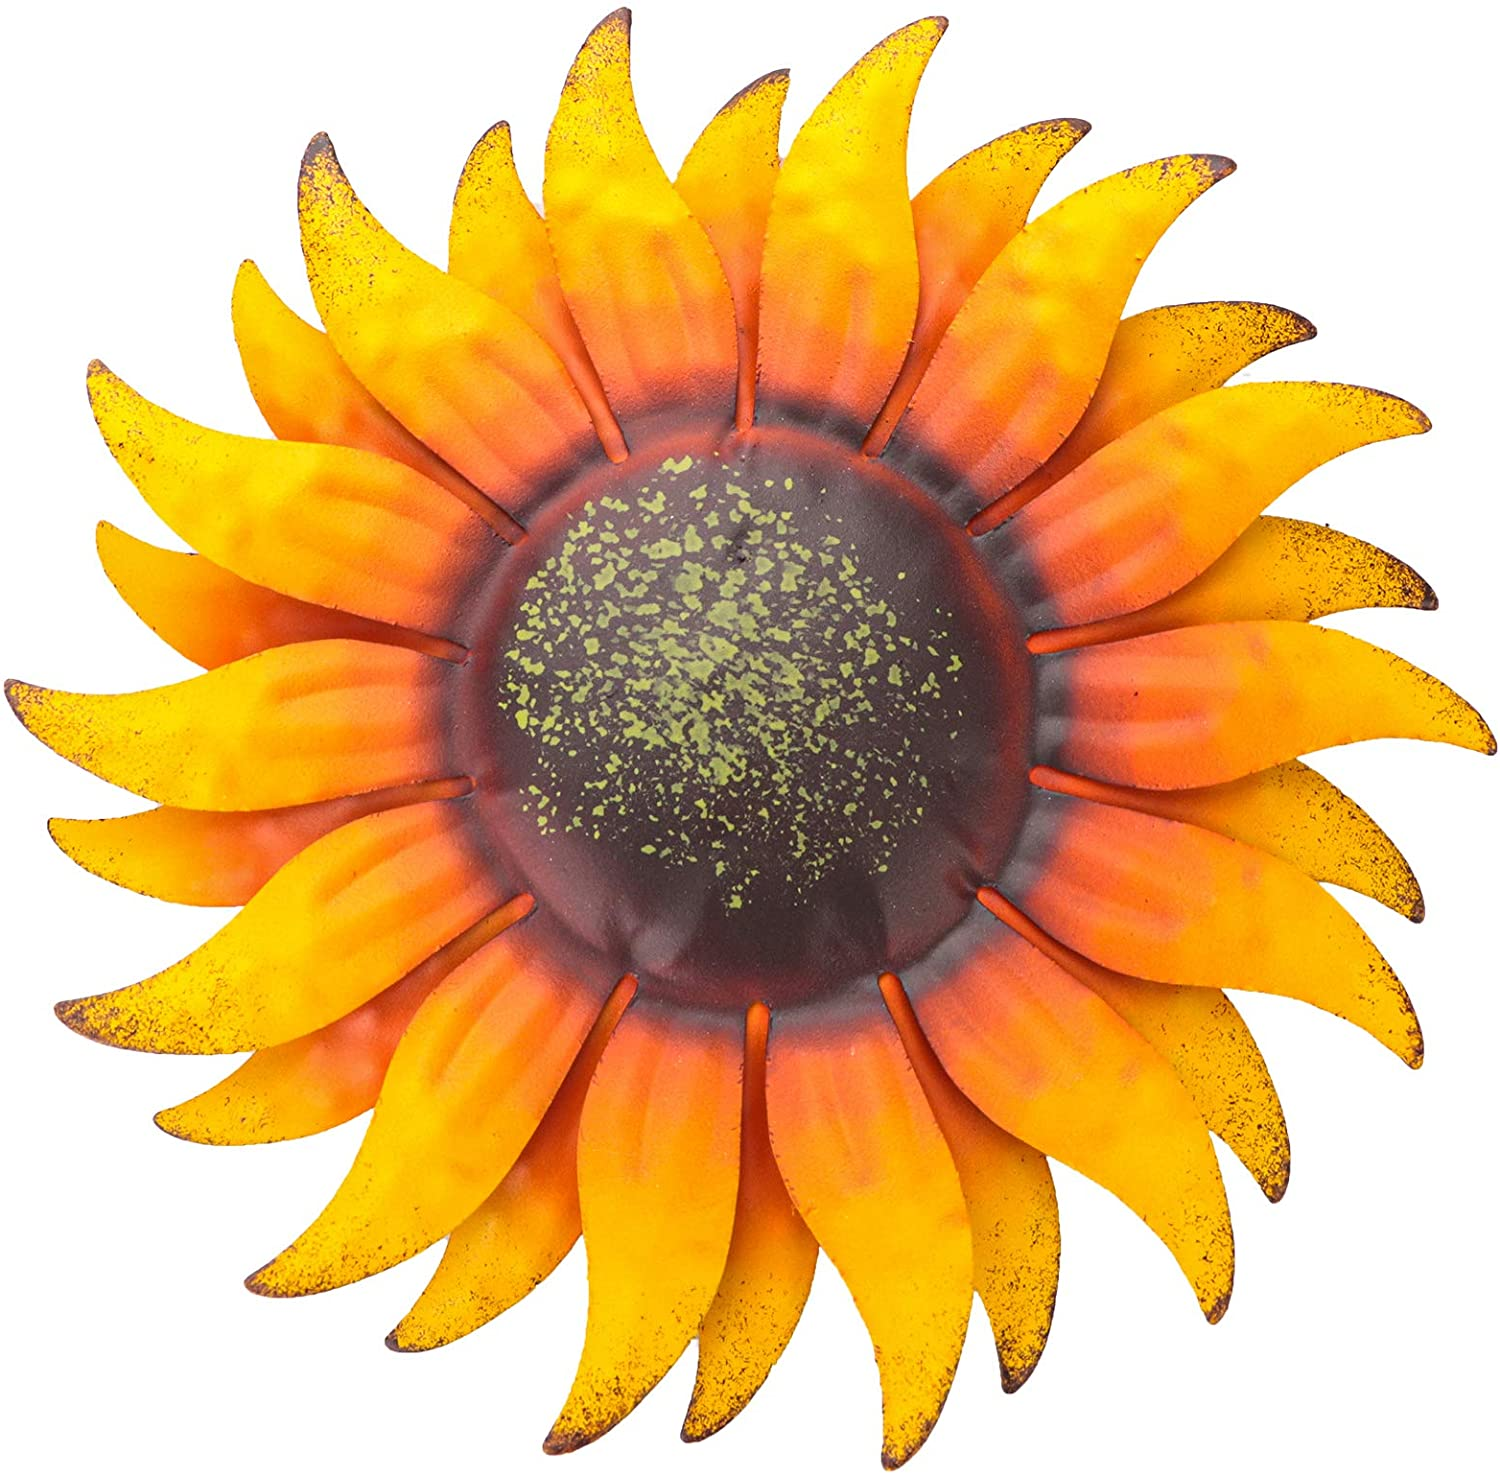 6 Inch Sunflower Metal Flowers Wall Decor Metal Wall Art Decorations Hanging for Indoor Outdoor Home Bathroom Kitchen Dining Room Bedroom Porch Hallway or Wall Sculptures